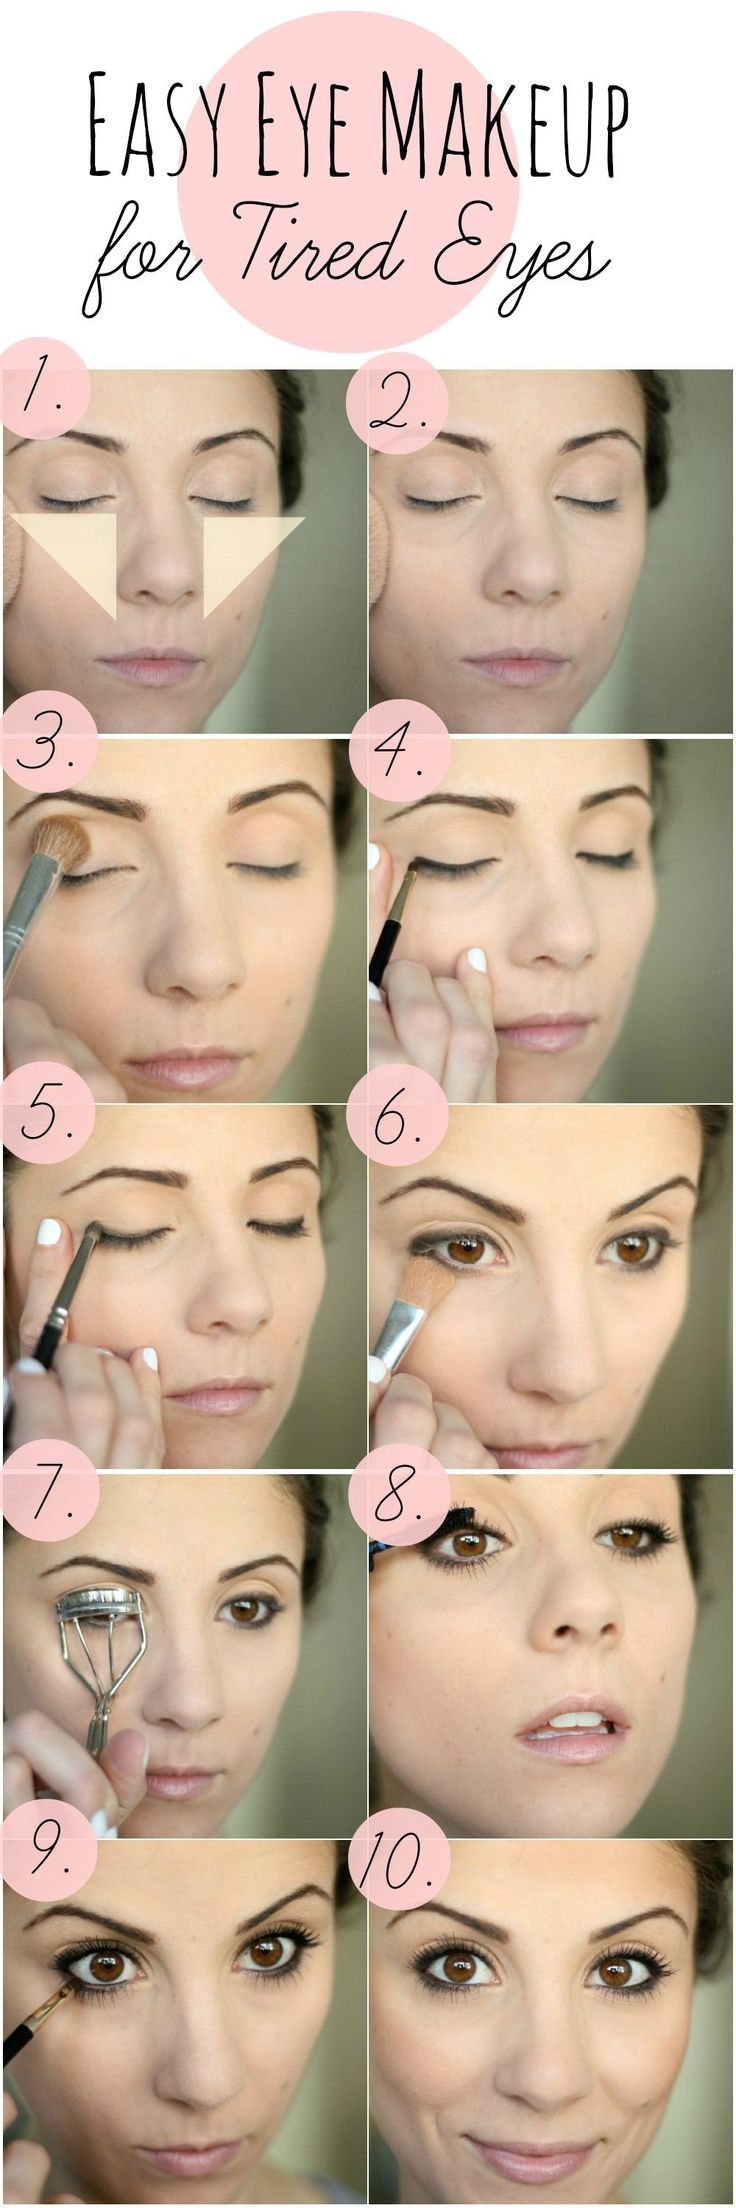 Eye Makeup for Tired Eyes